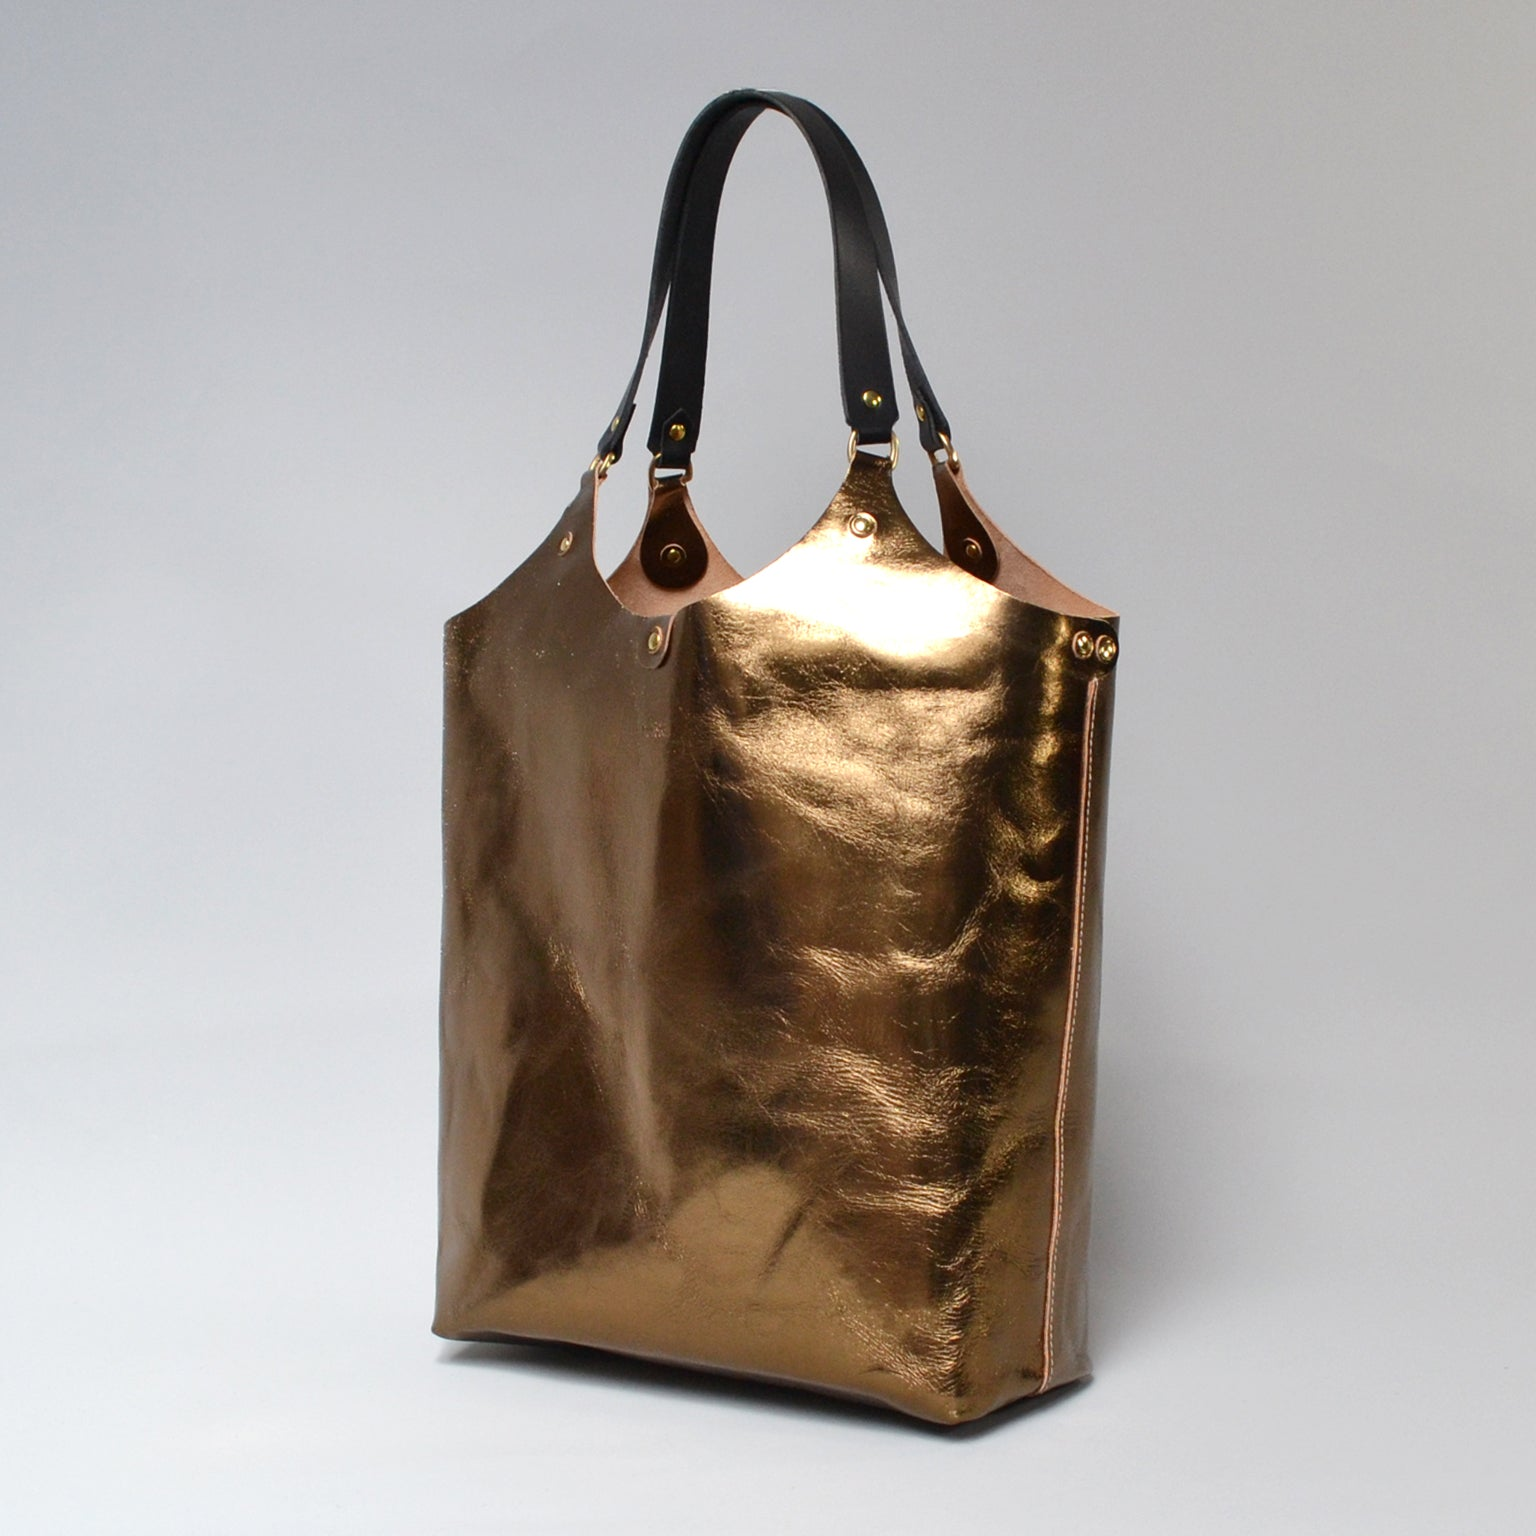 MARY <br/> Foiled Leather Tote Bag <br/> Bronze